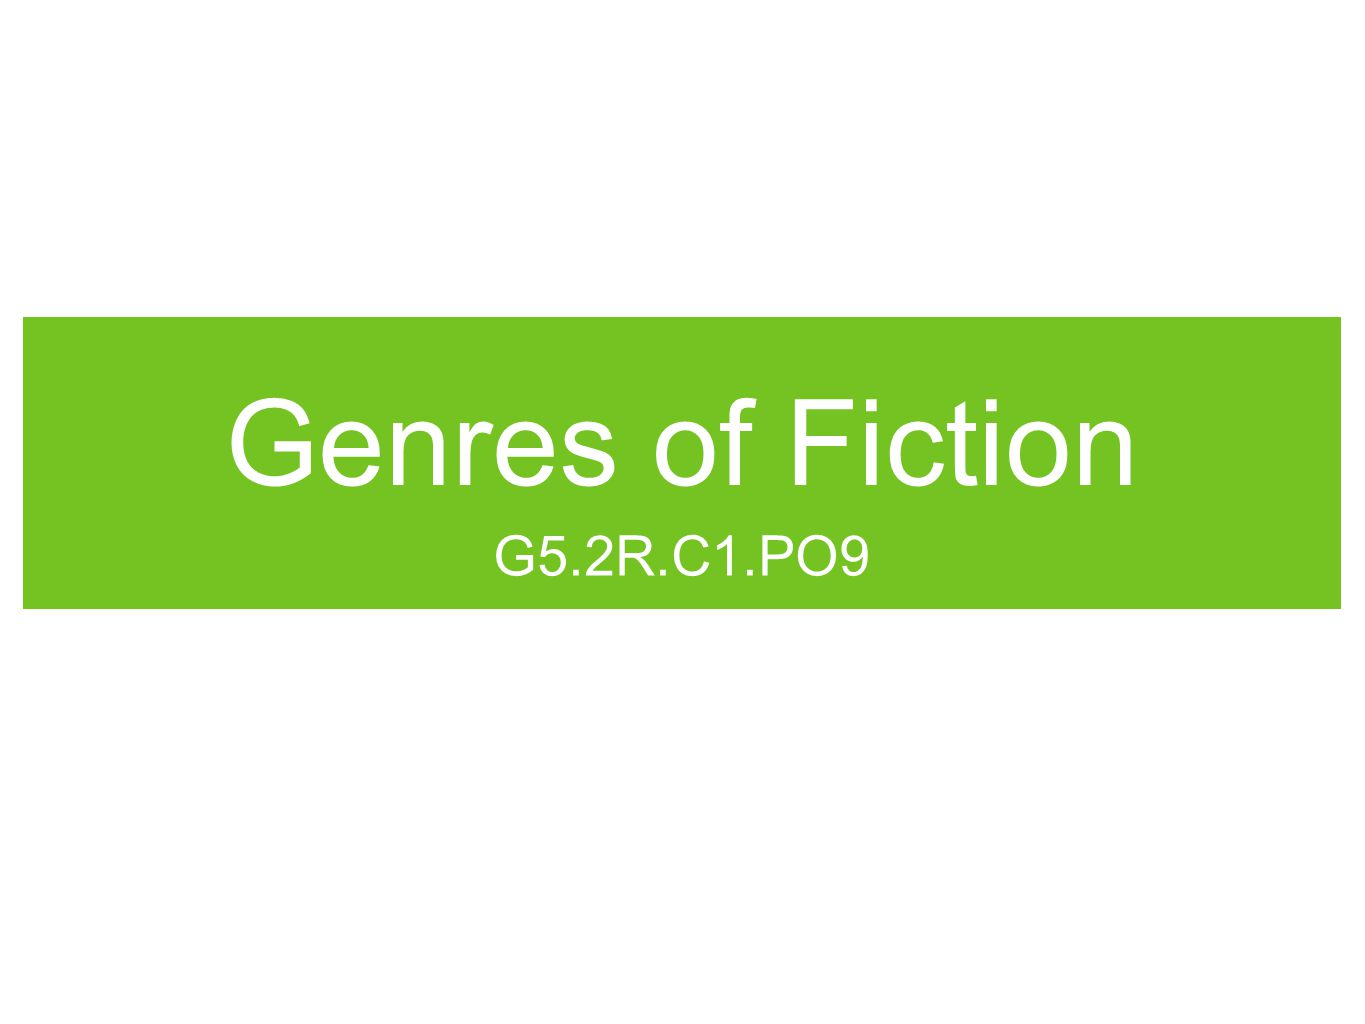 Genres of Fiction G5.2R.C1.PO9